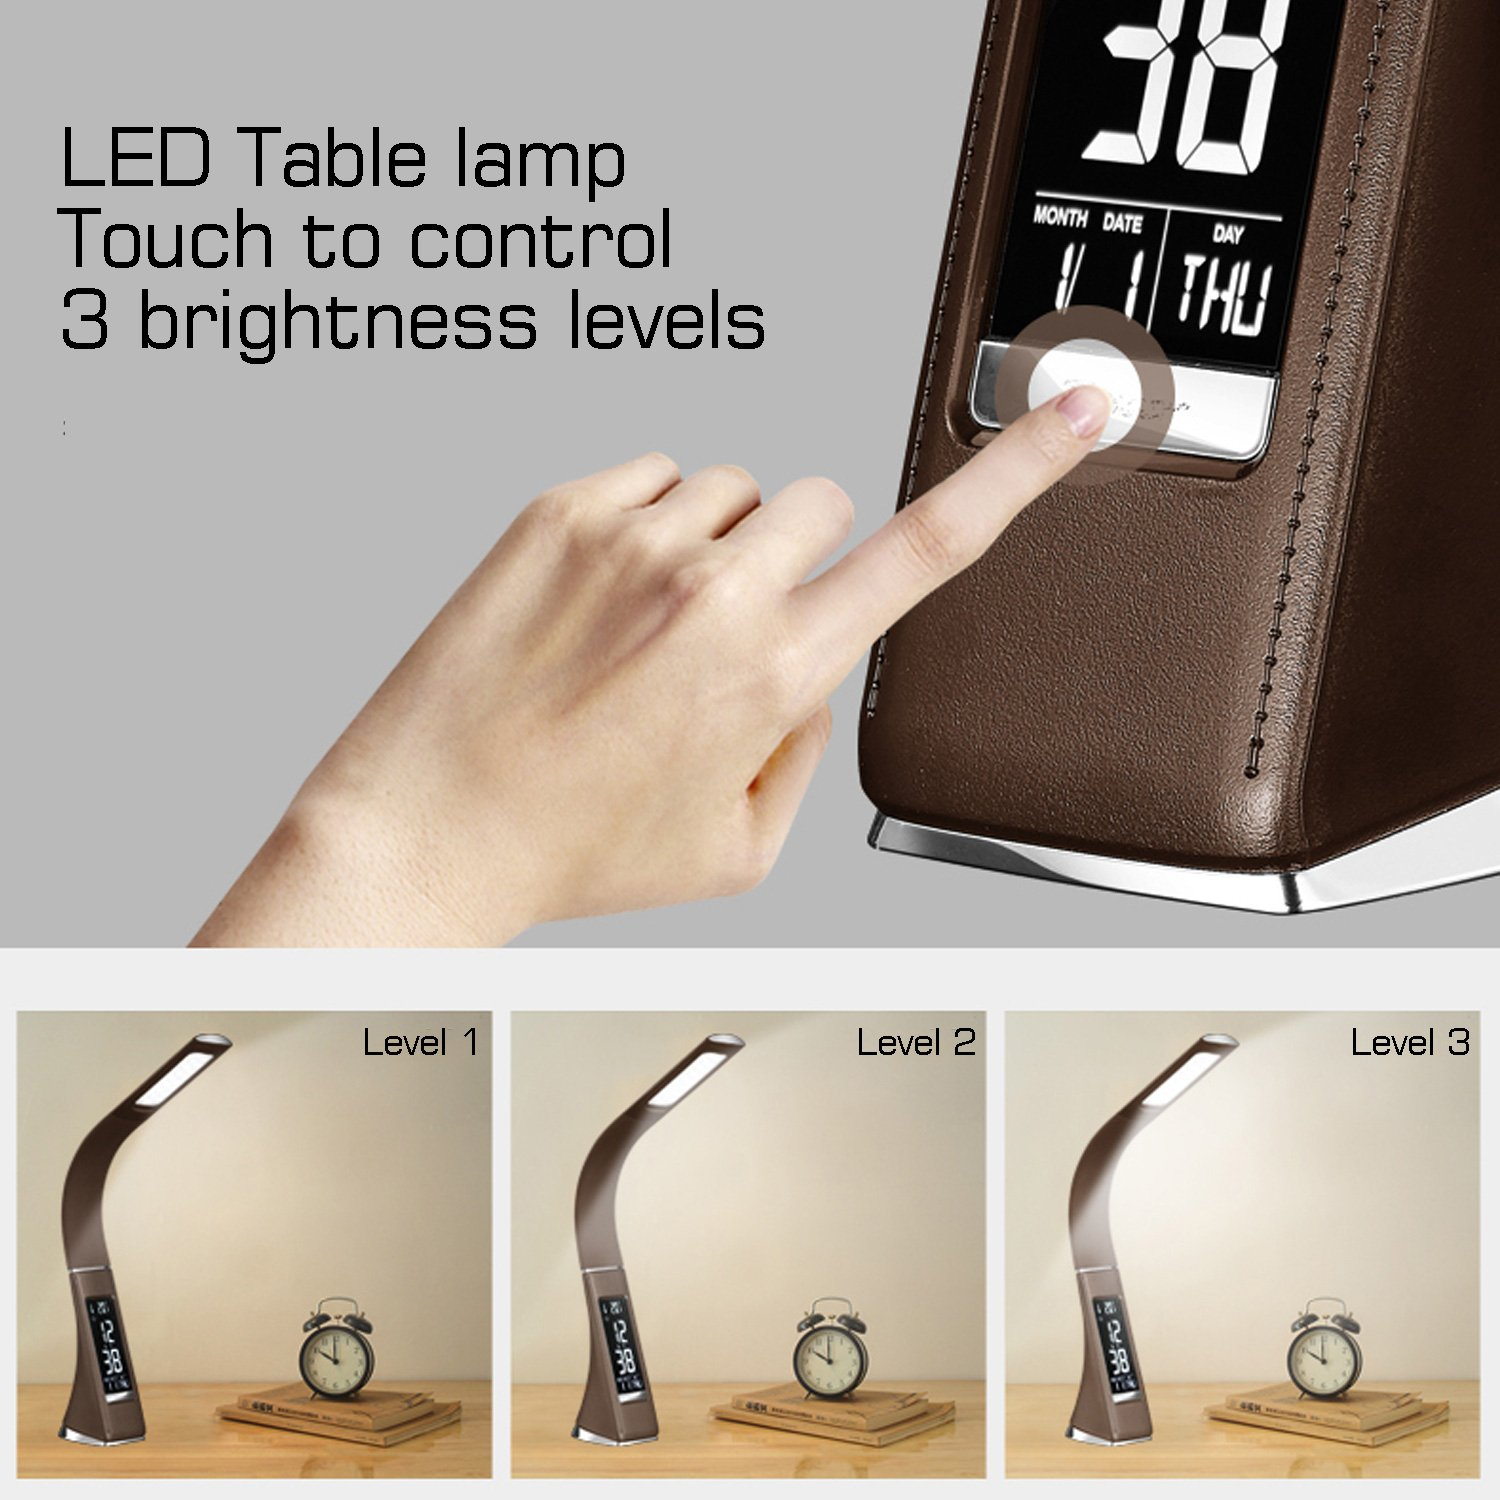 Desk Lamps 5w Led Touch Dimmable Table Lamp Desk Lamp Alarm Clock Calendar Time Temperature Display Lamps & Shades